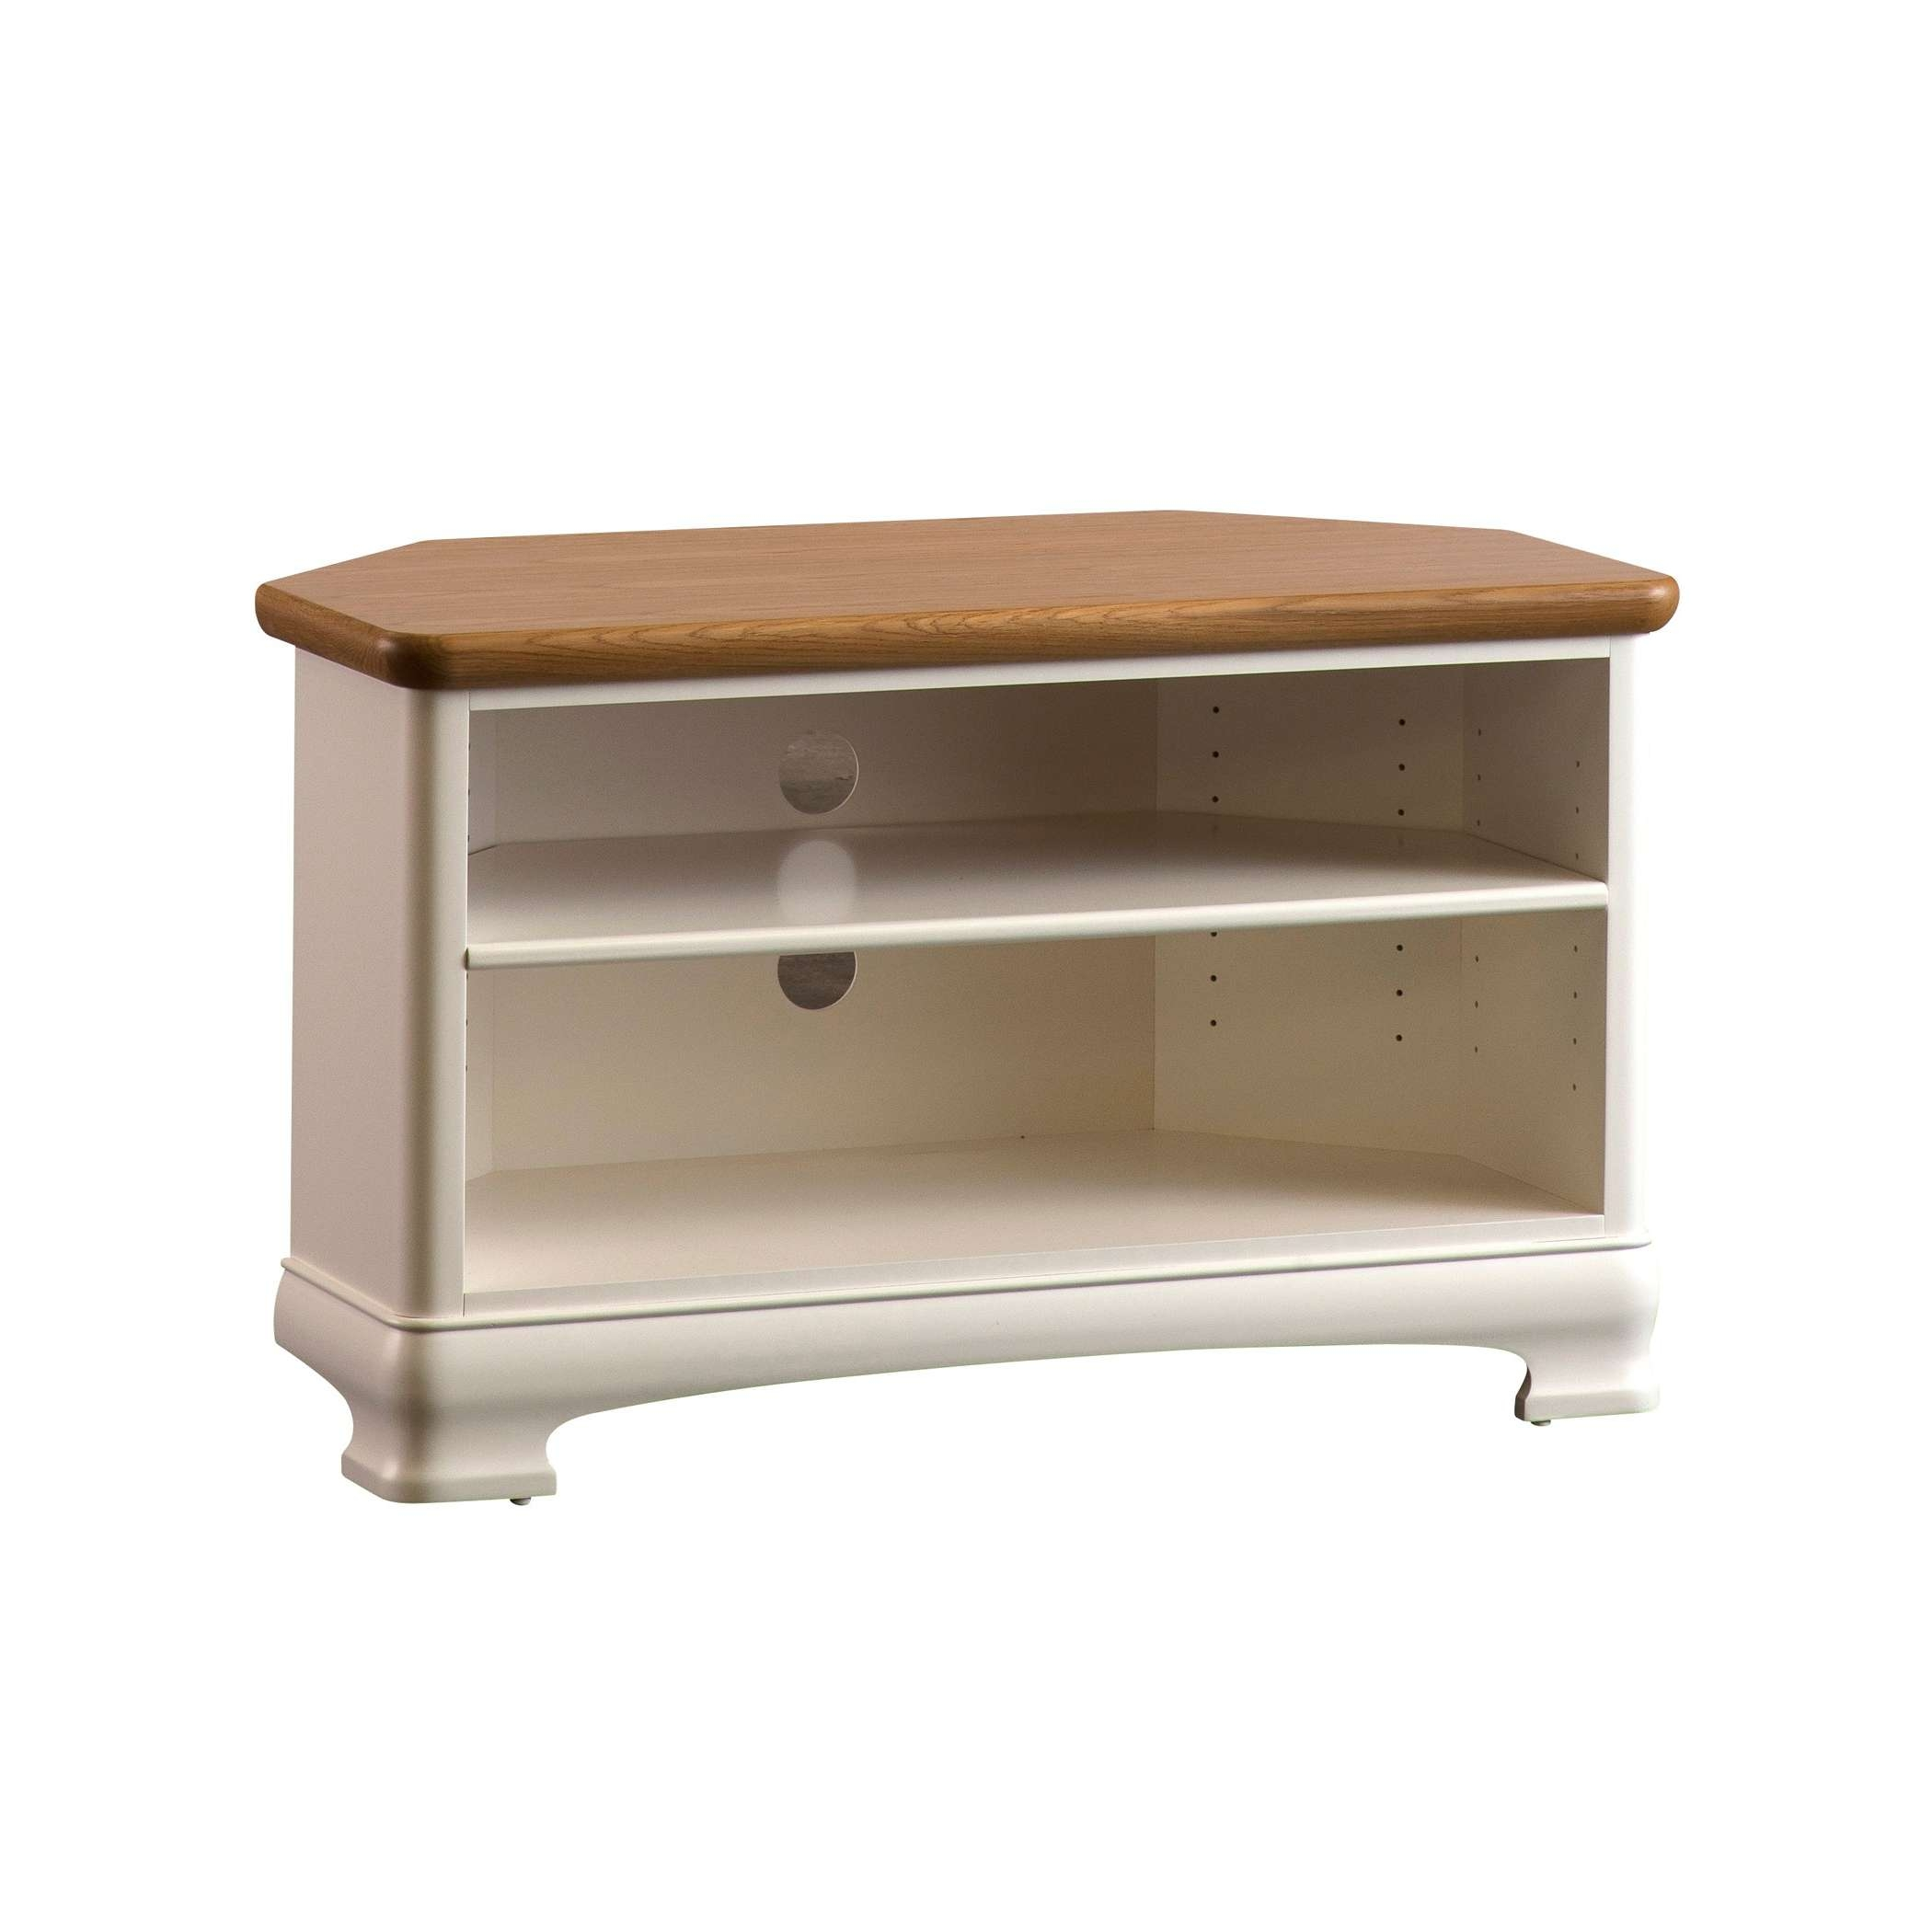 Painted Corner Tv Stand | Gola Furniture Uk Intended For Painted Corner Tv Cabinets (View 2 of 20)